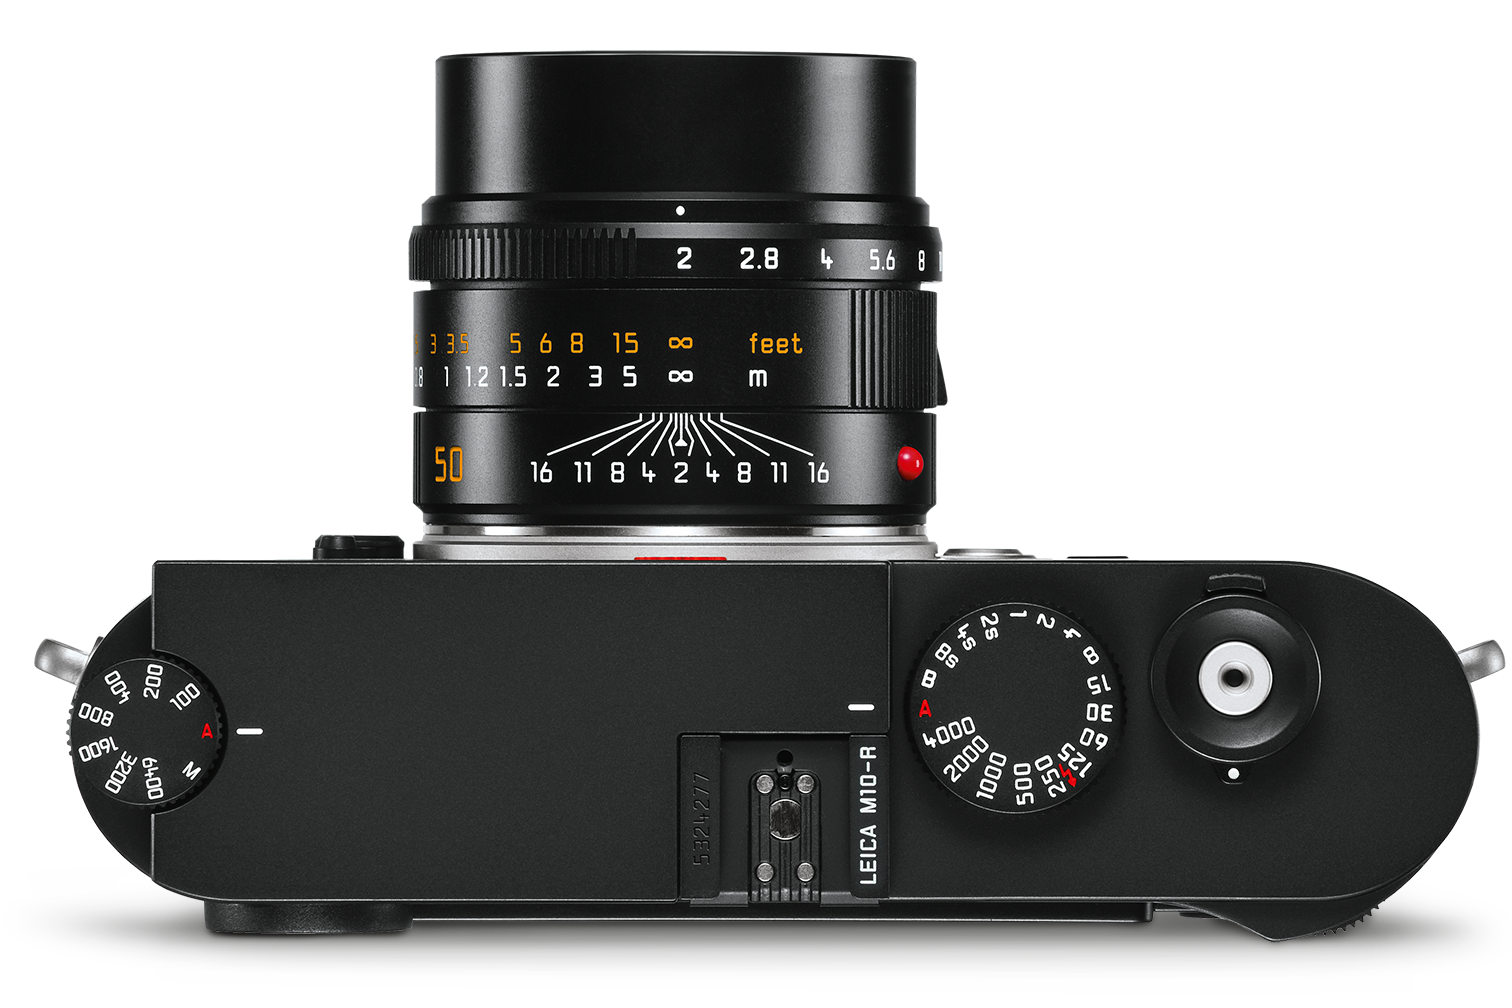 Leica M10-R body view from above